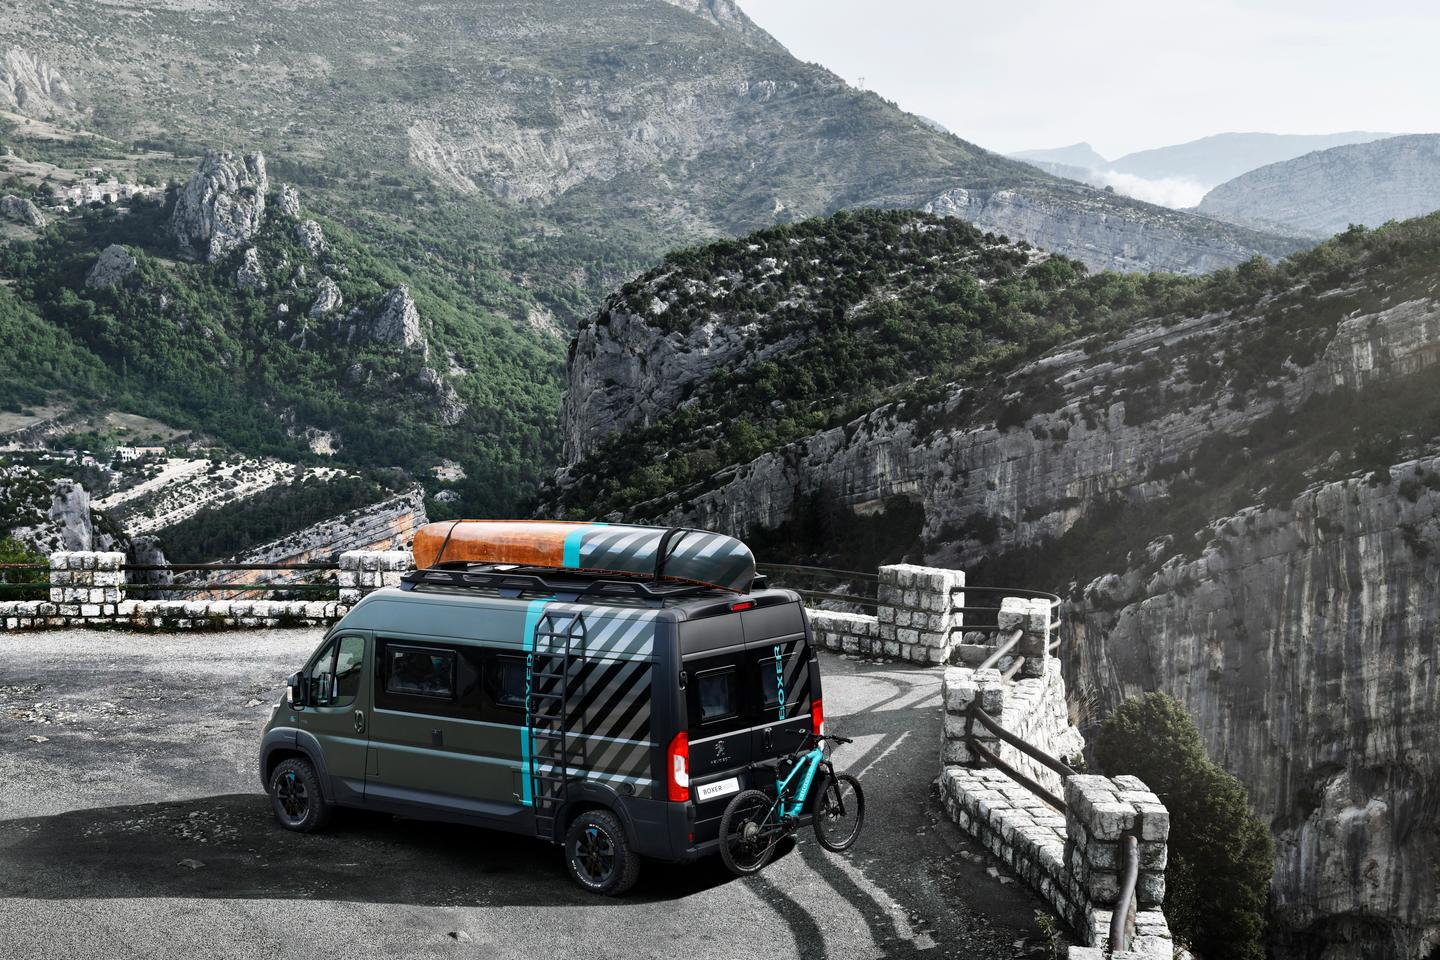 Peugeot Boxer Camper parked on a cliff top road and looking out over the mountains